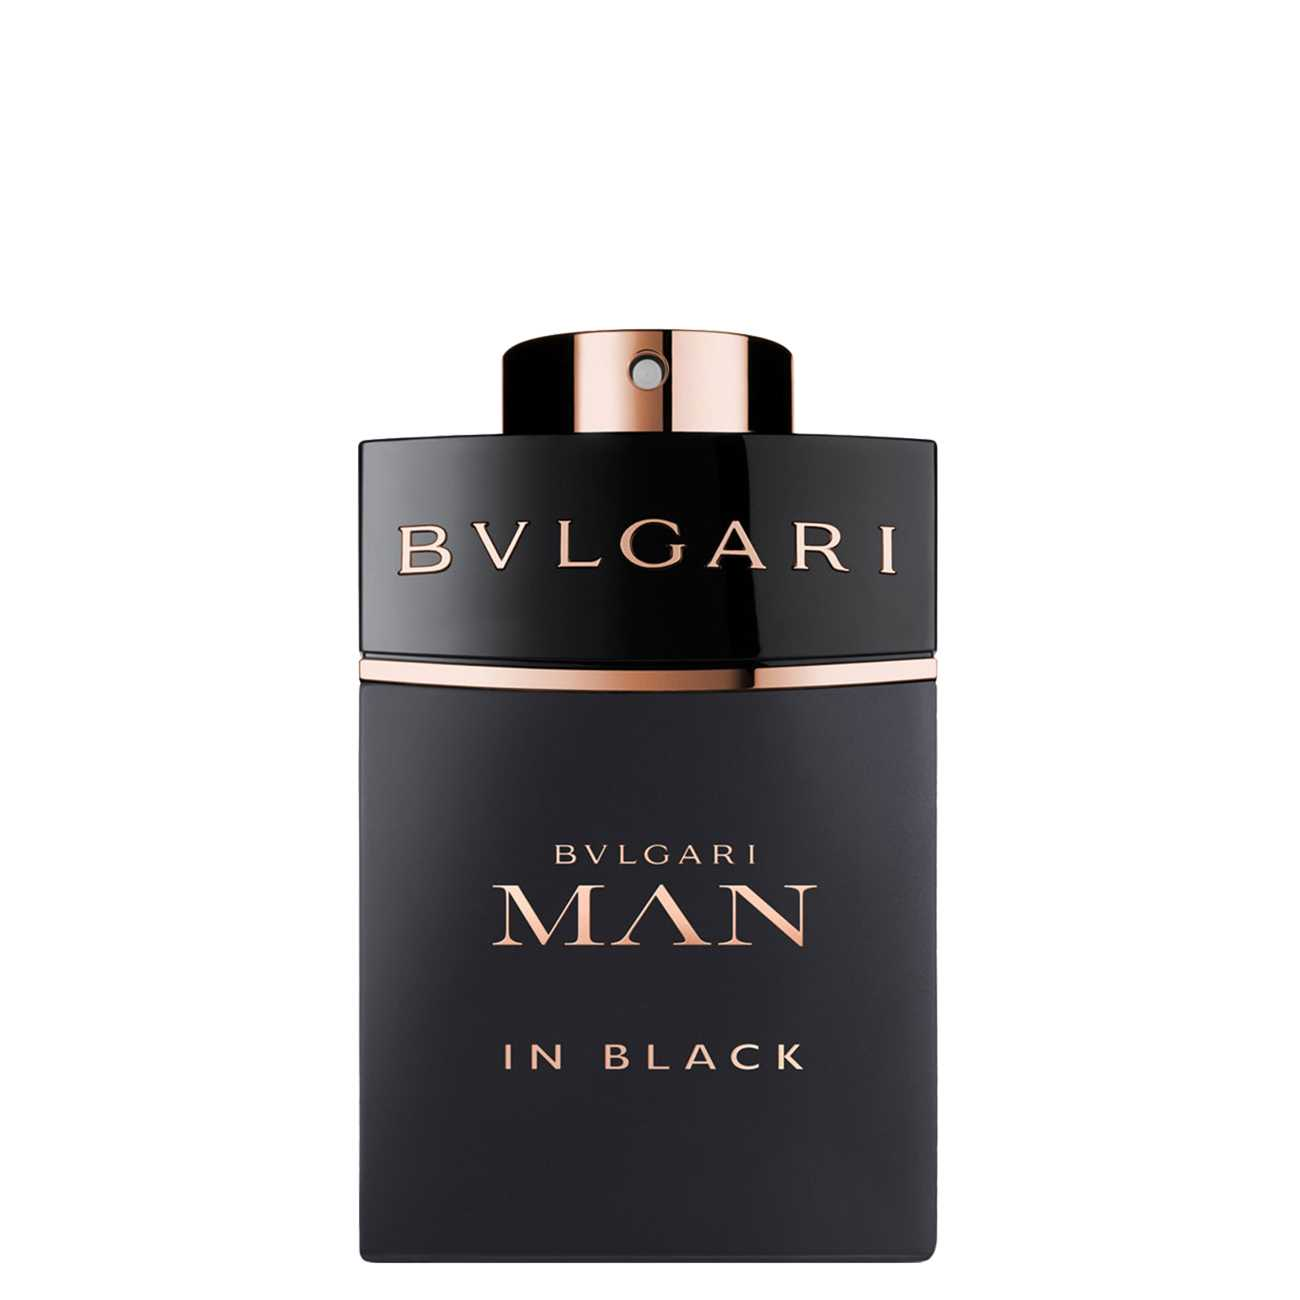 MAN IN BLACK 60ml poza